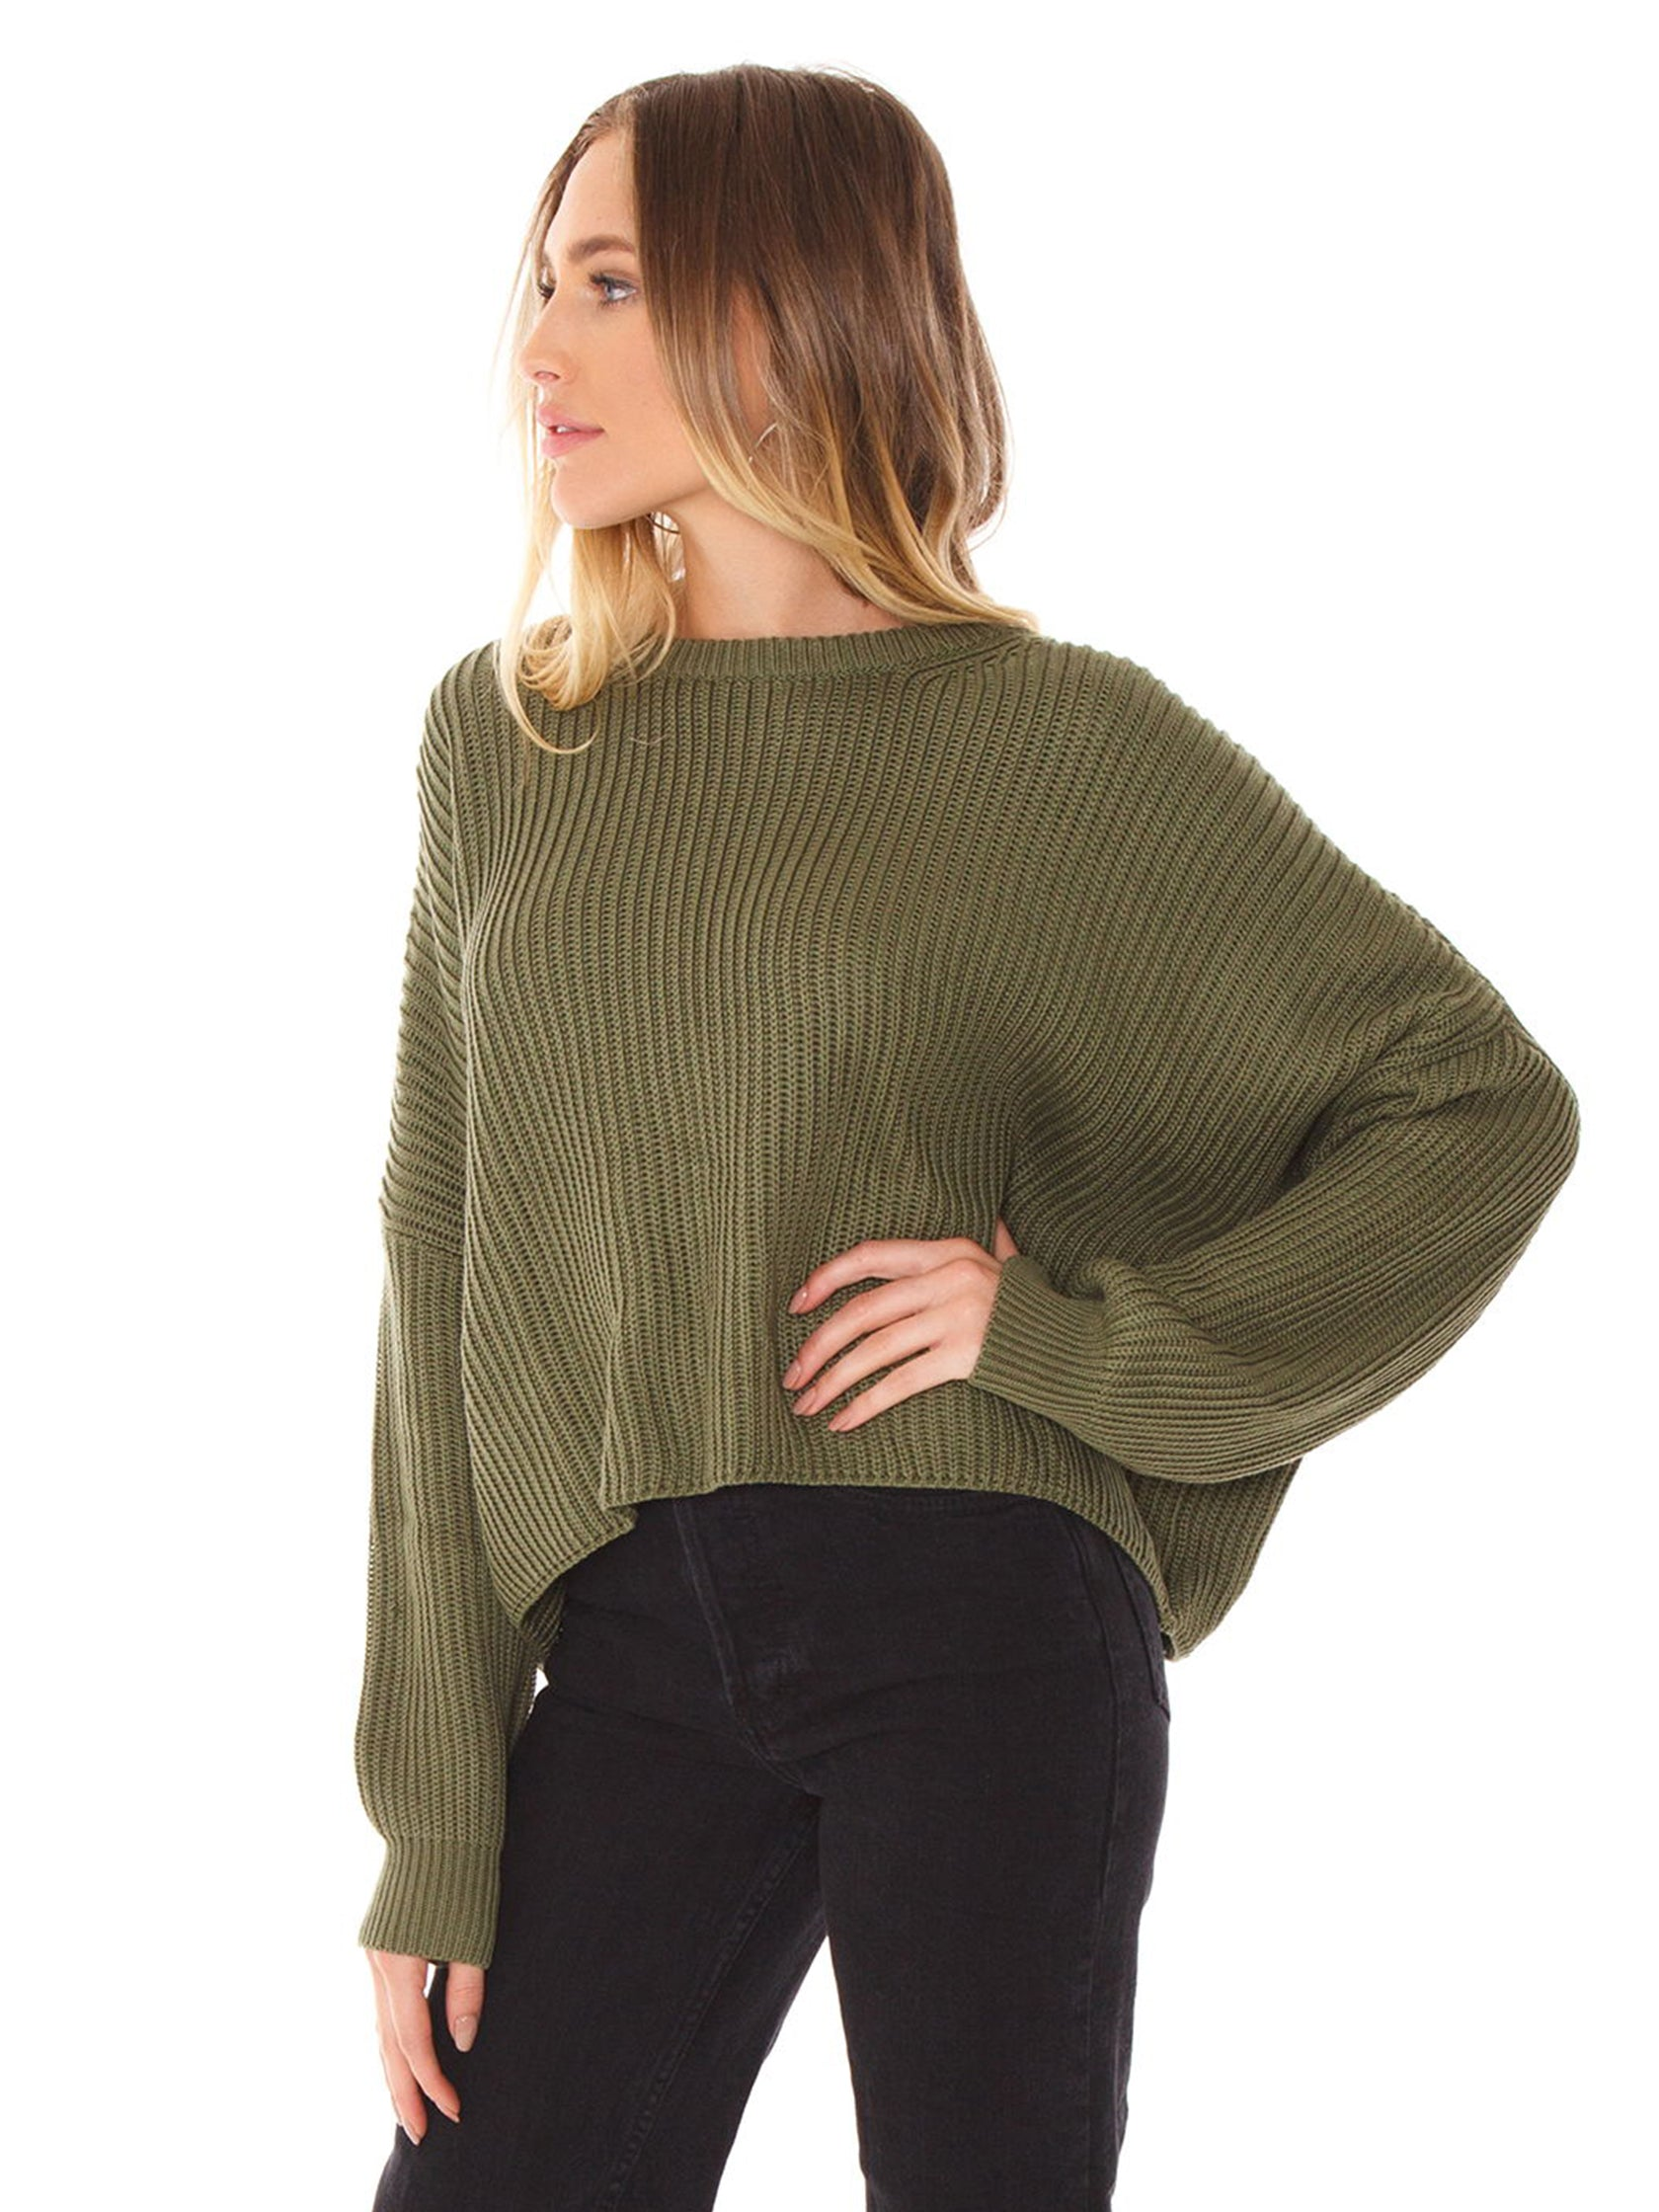 Women wearing a sweater rental from FashionPass called Callie Sweater